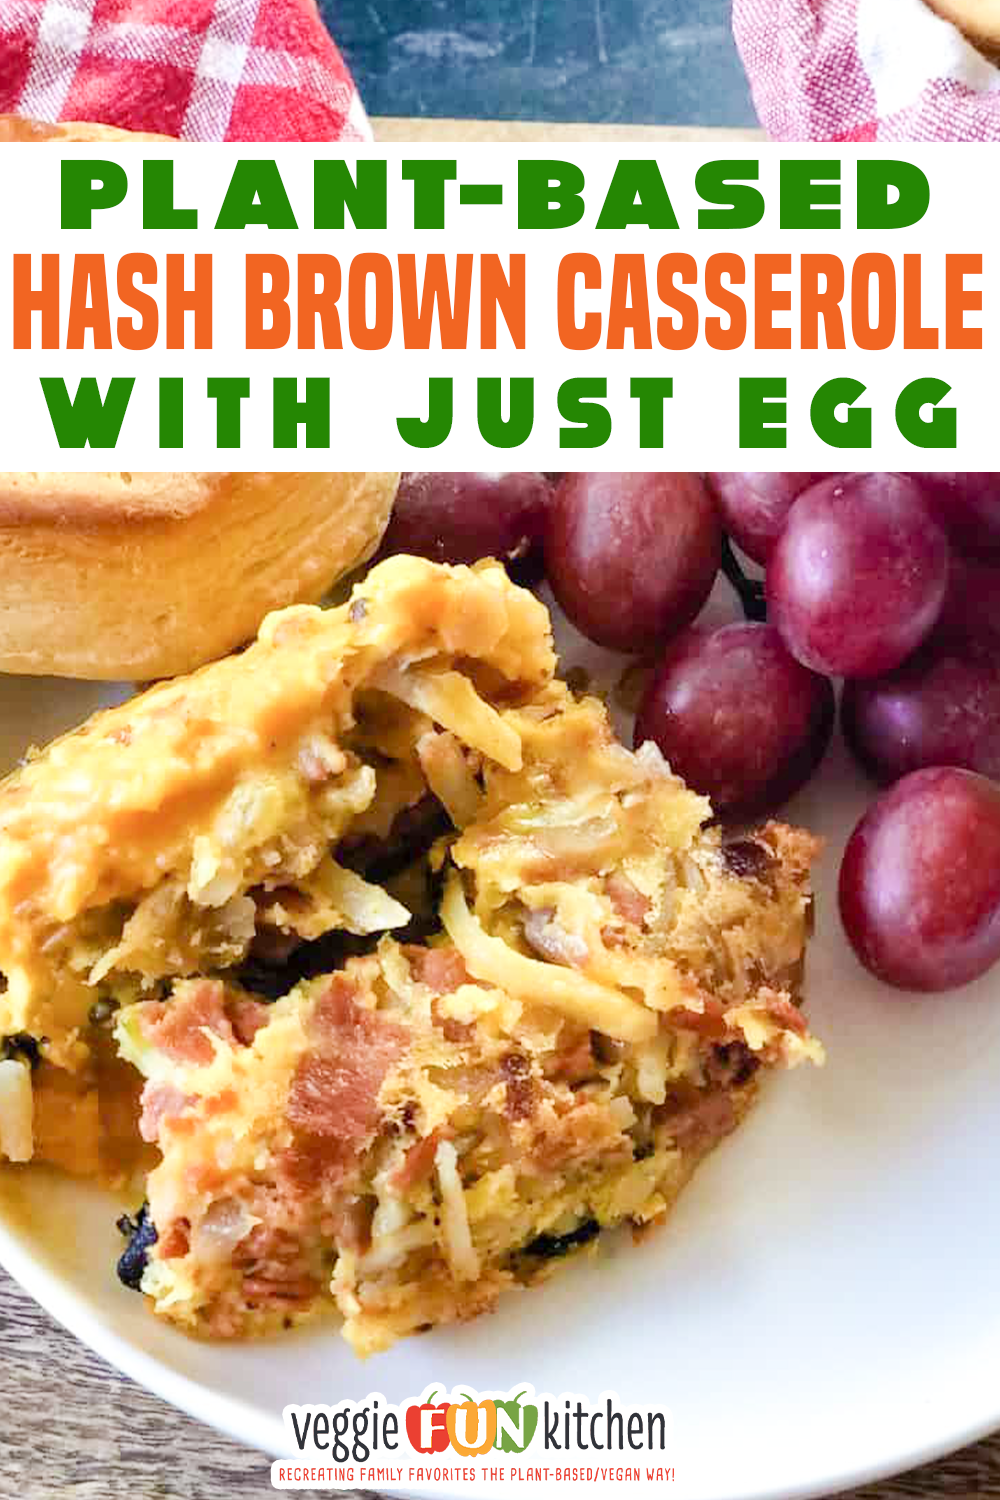 Plant Based Hash Brown Casserole With Just Egg Veggie Fun Kitchen Recipe In 2020 Vegan Comfort Food Plant Based Recipes Breakfast Vegan Recipes Easy